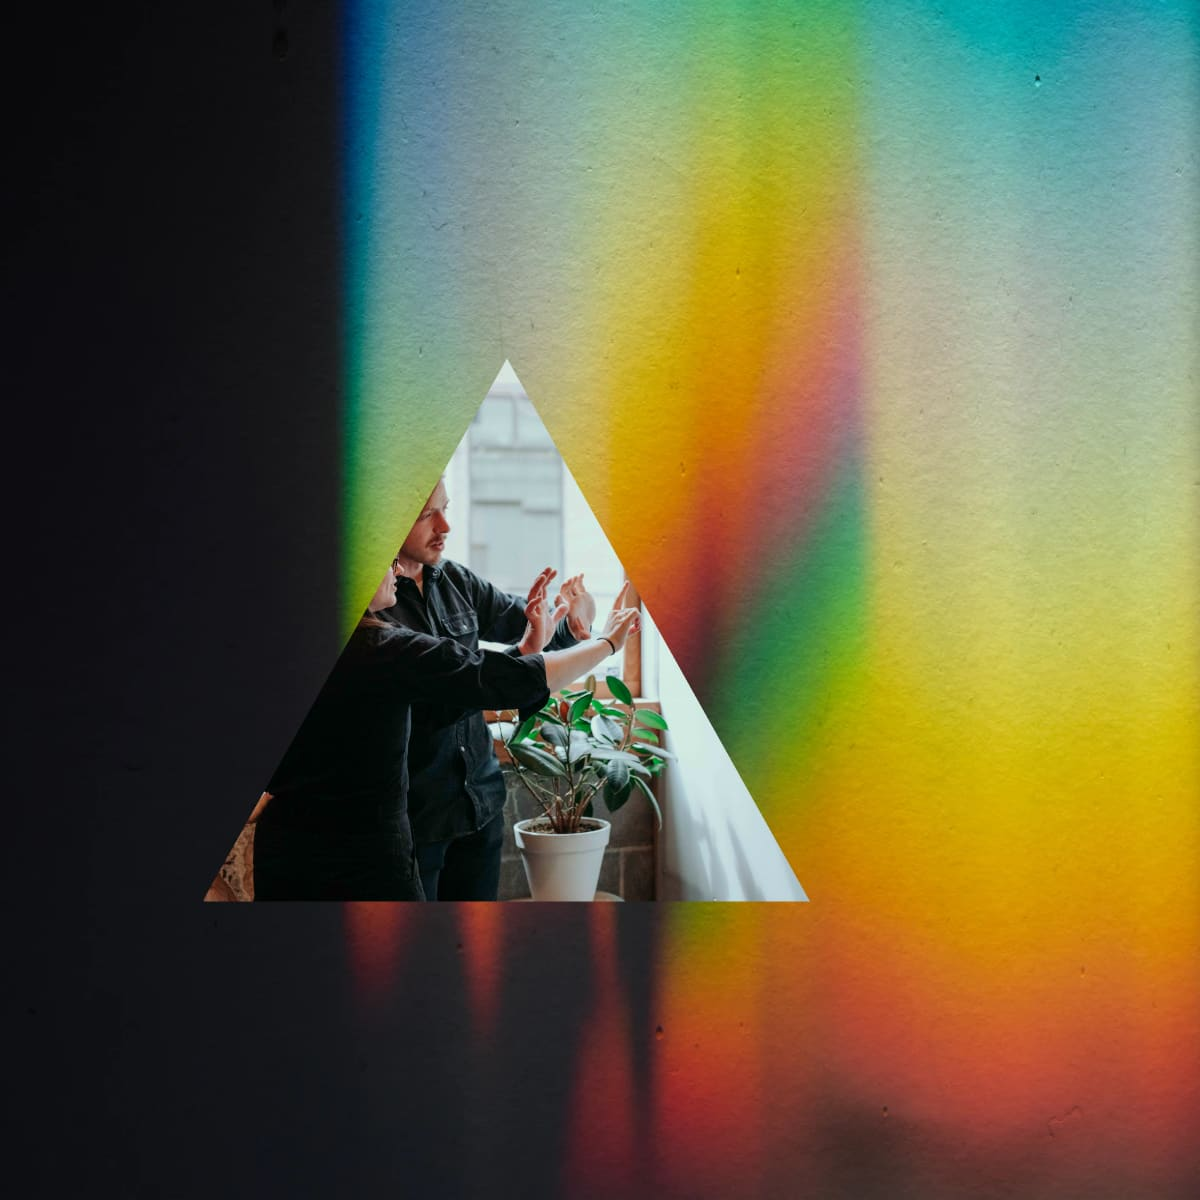 Collage image of a prism with two Whiteboard employees brainstorming in front of a whiteboard.